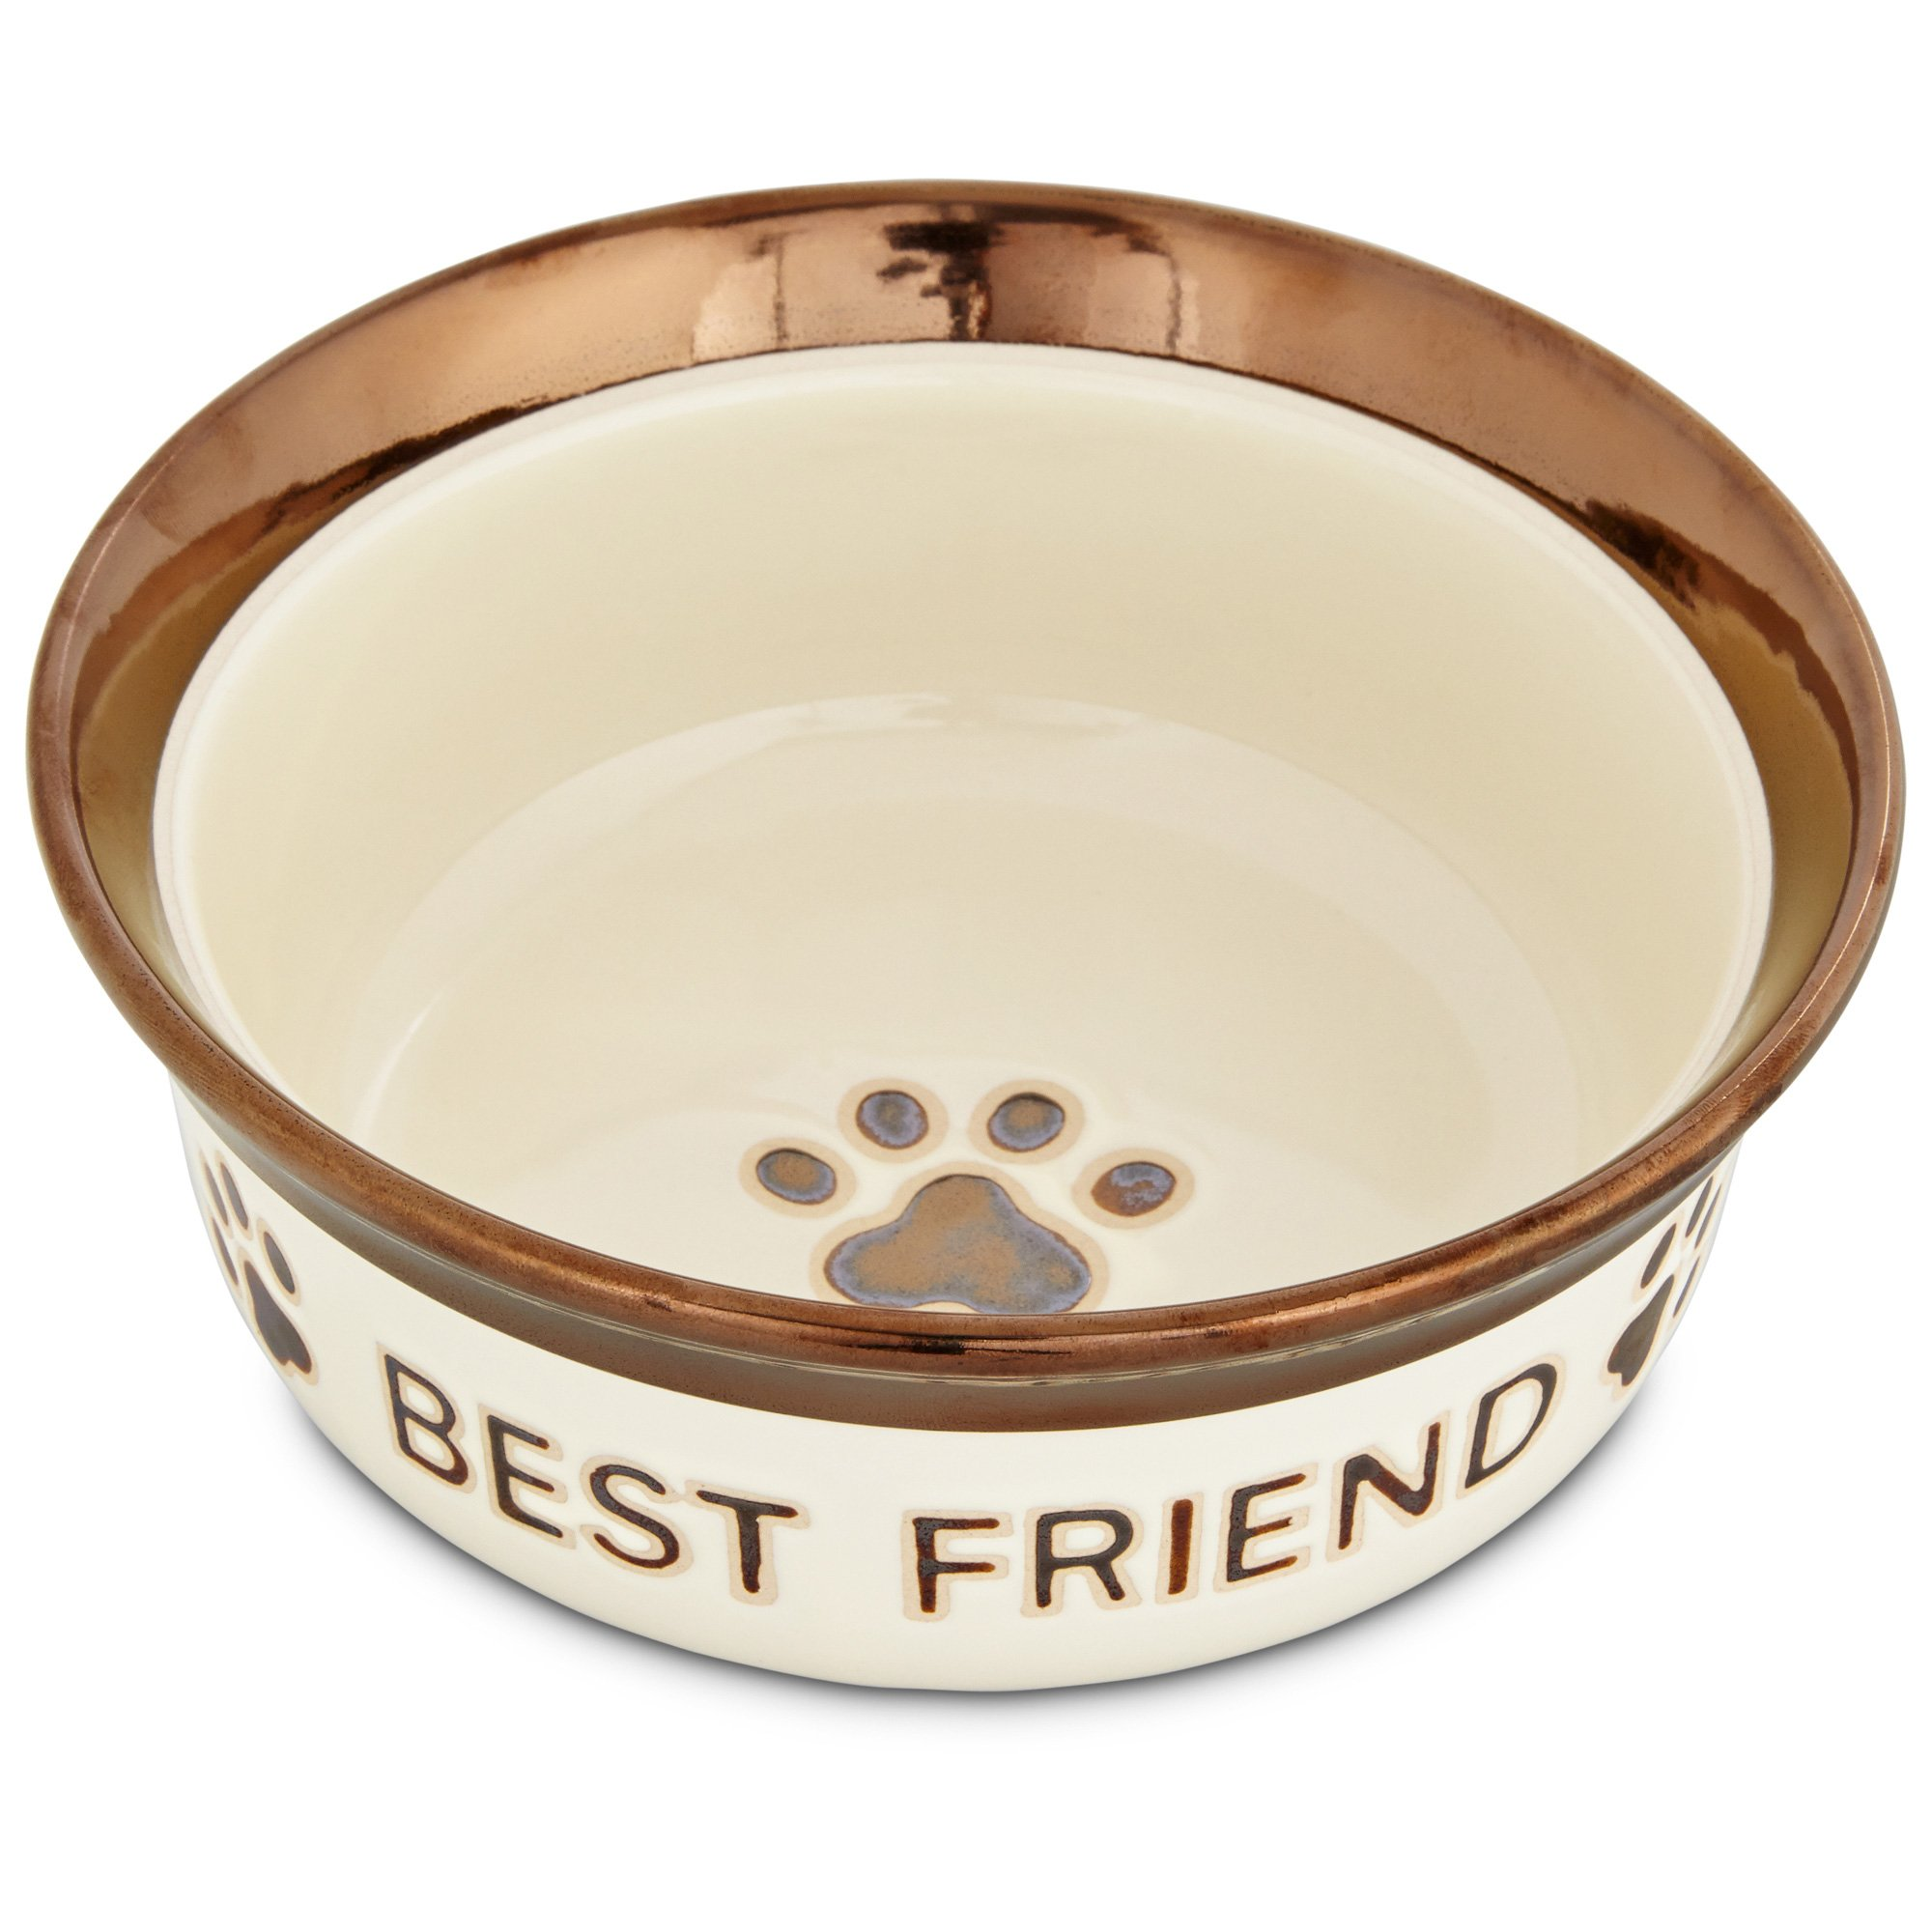 Harmony Best Friend Ceramic Dog Bowl